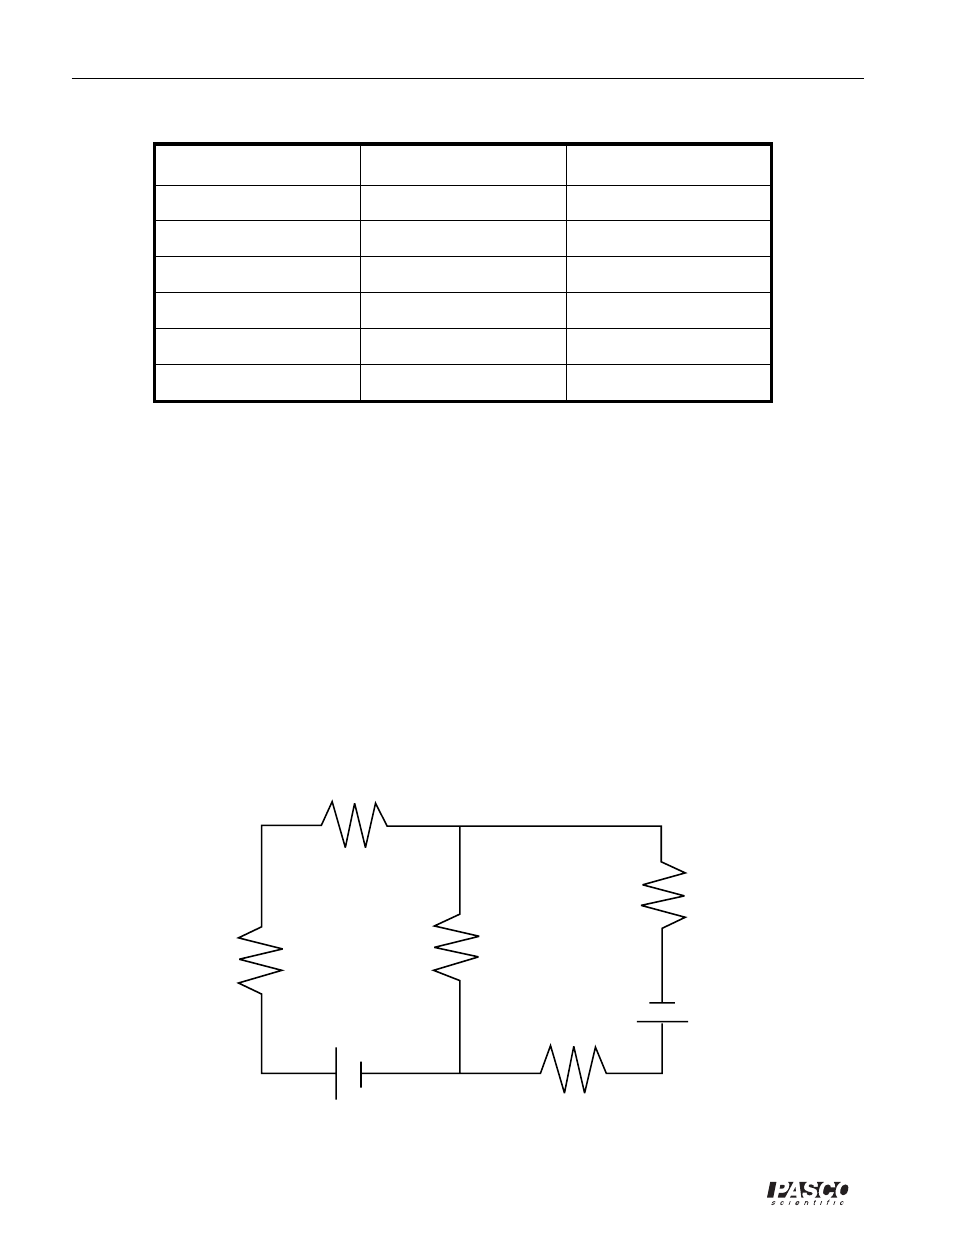 Analysis Discussion Extension Pasco Em 8656 Ac Dc Electronics The Circuit Below Along With Current Flowing And Potential Laboratory User Manual Page 26 126